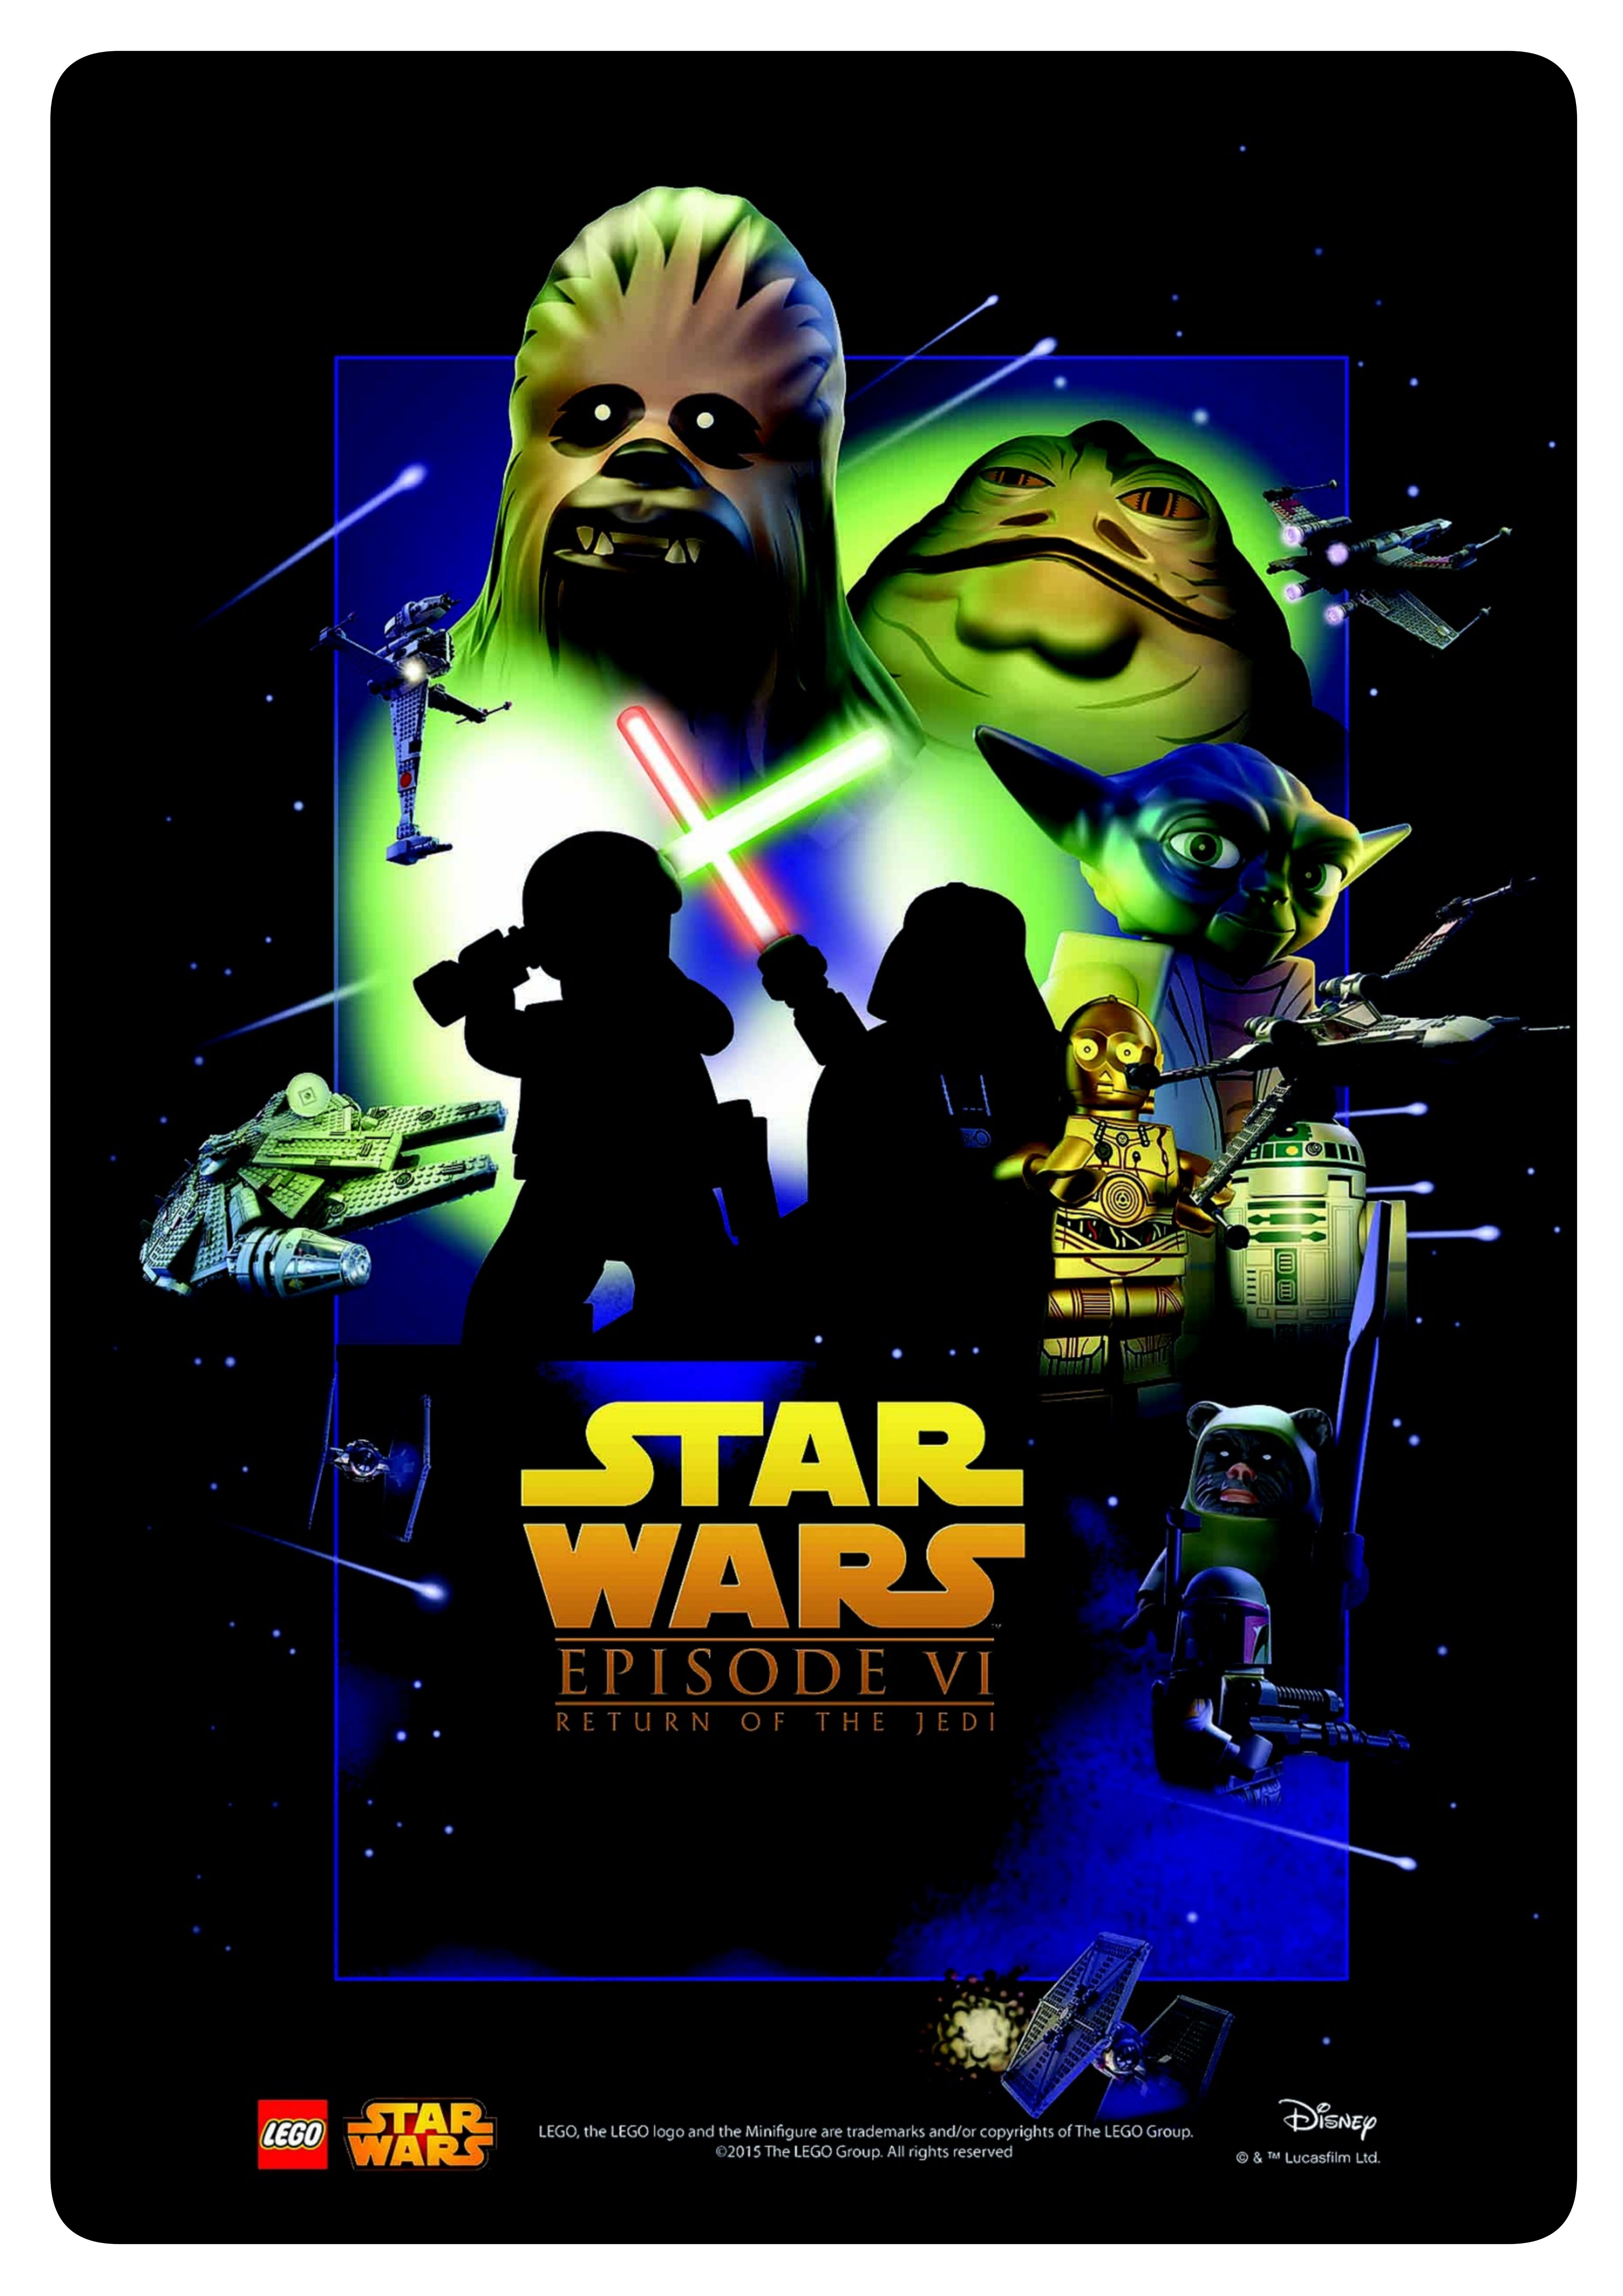 LEGO Star Wars Poster | LEGO Star Wars | Pinterest